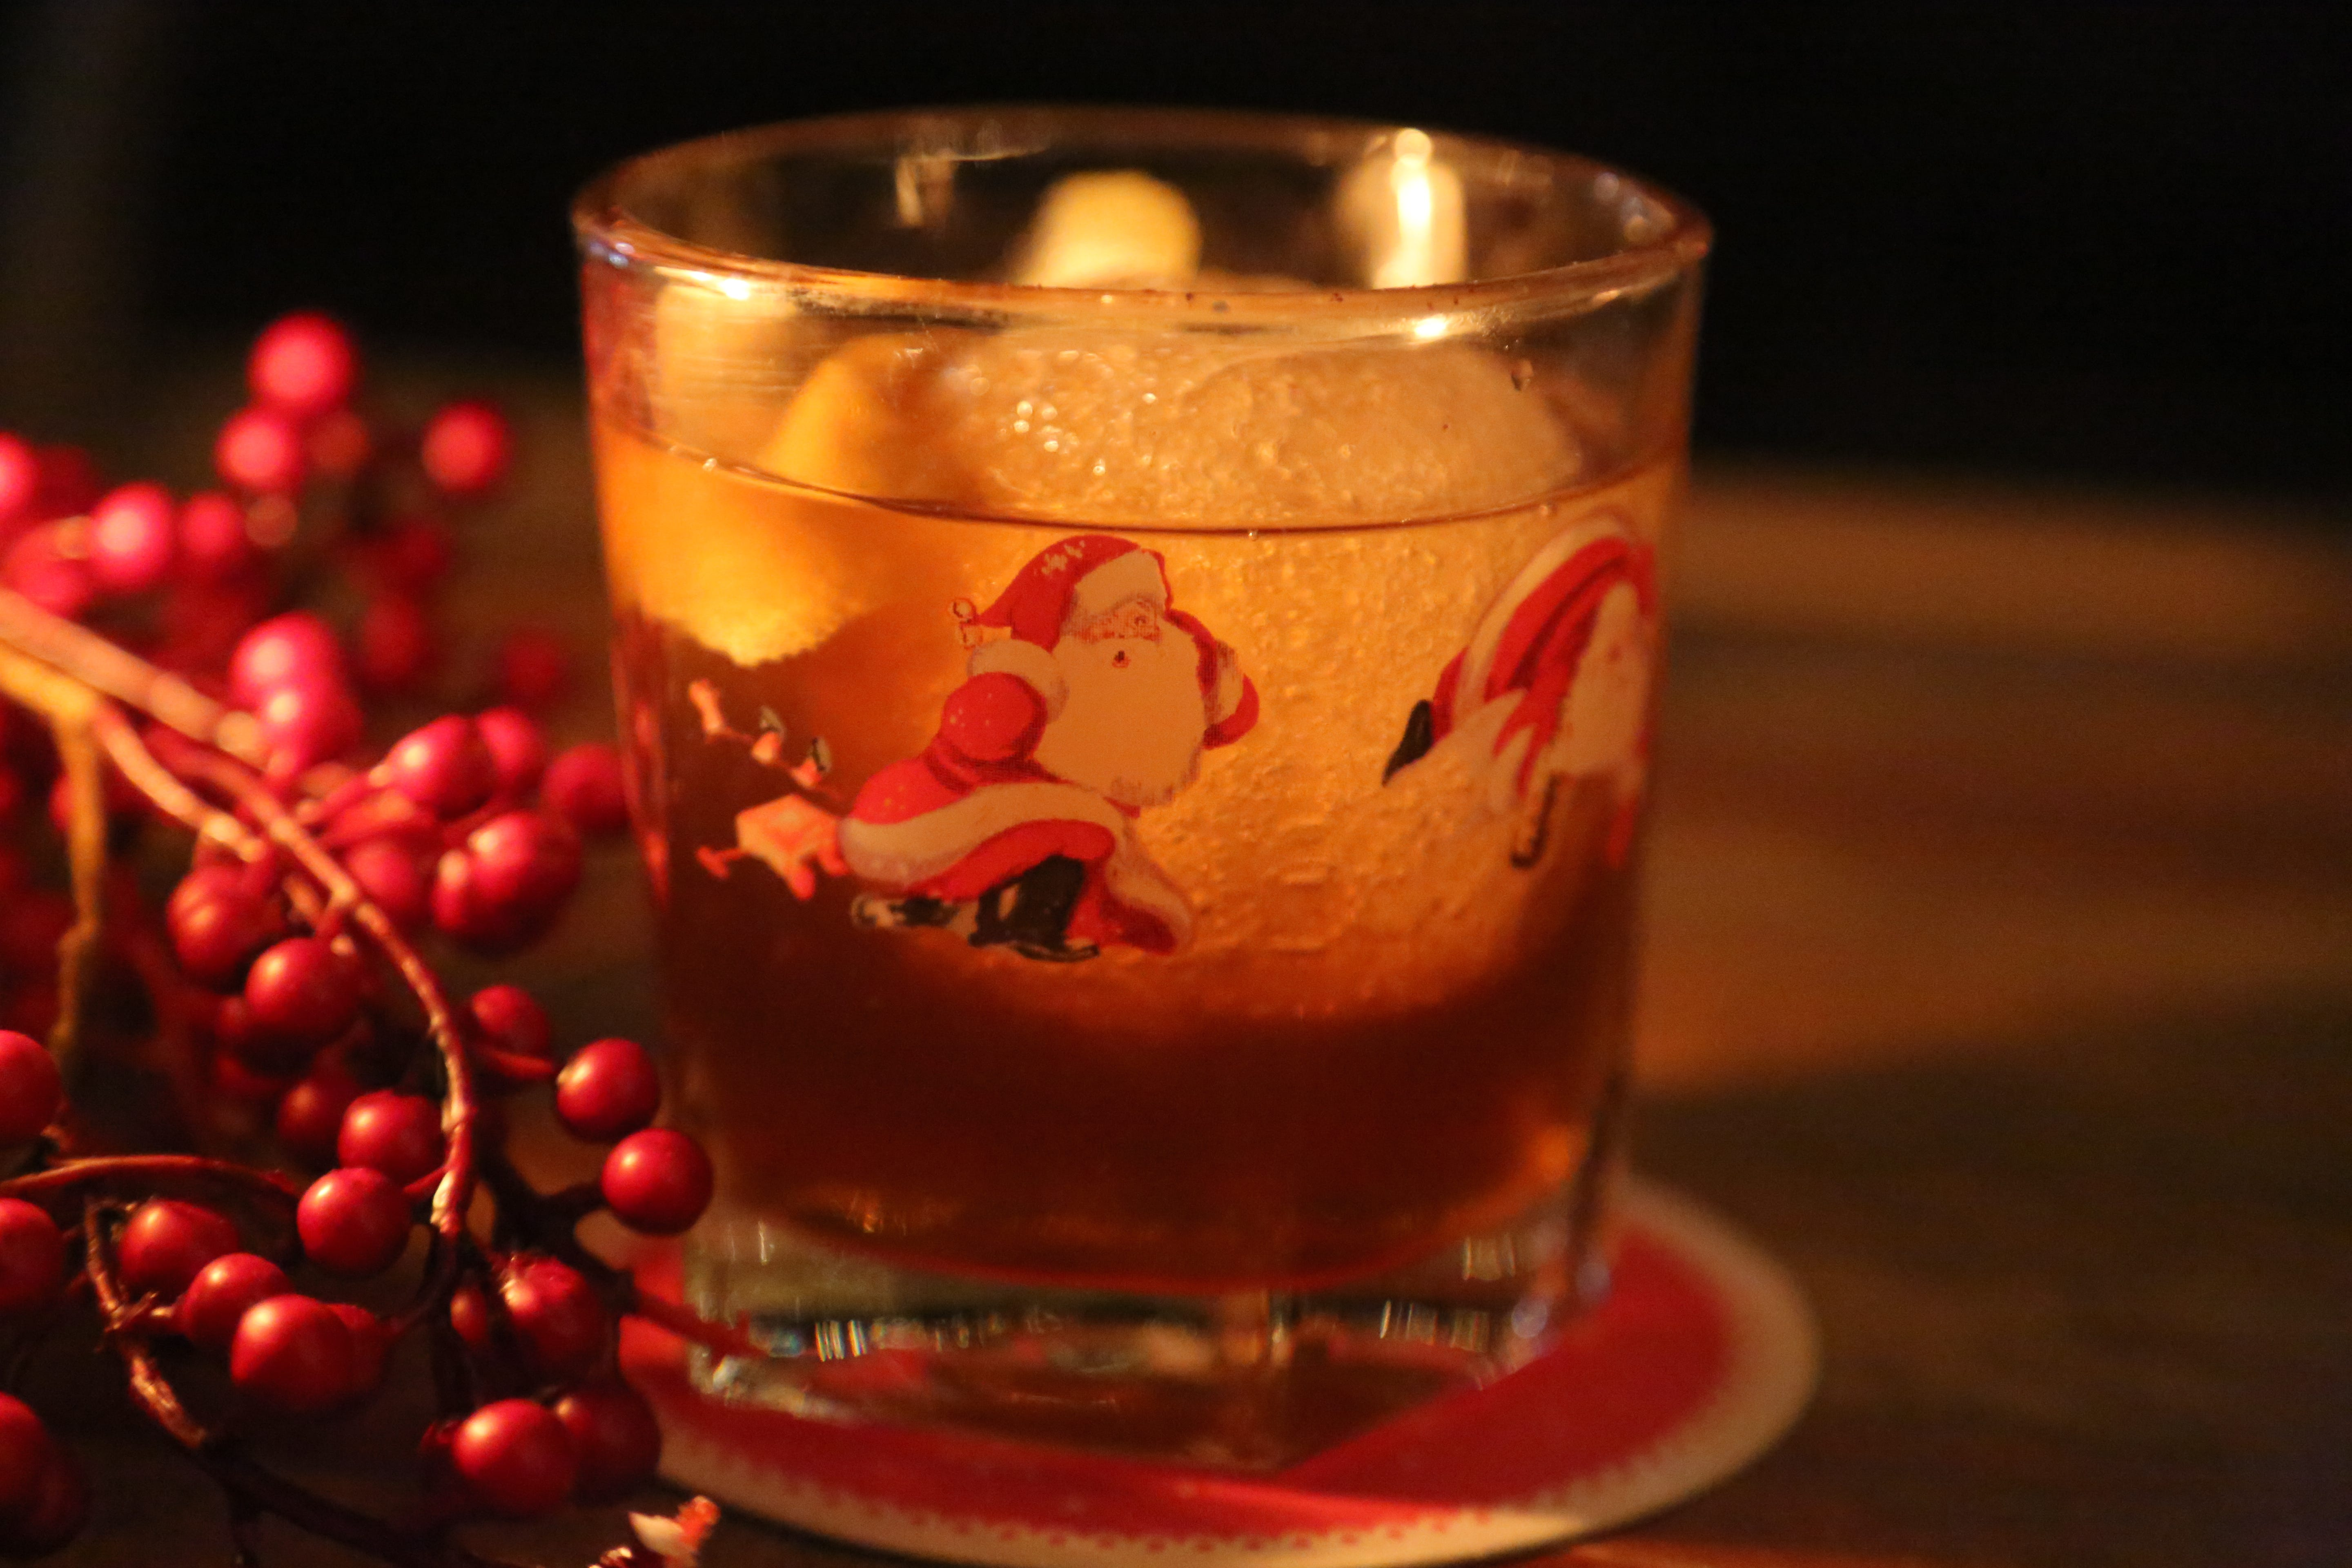 A Snowball Old Fashioned made with gingerbread bourbon